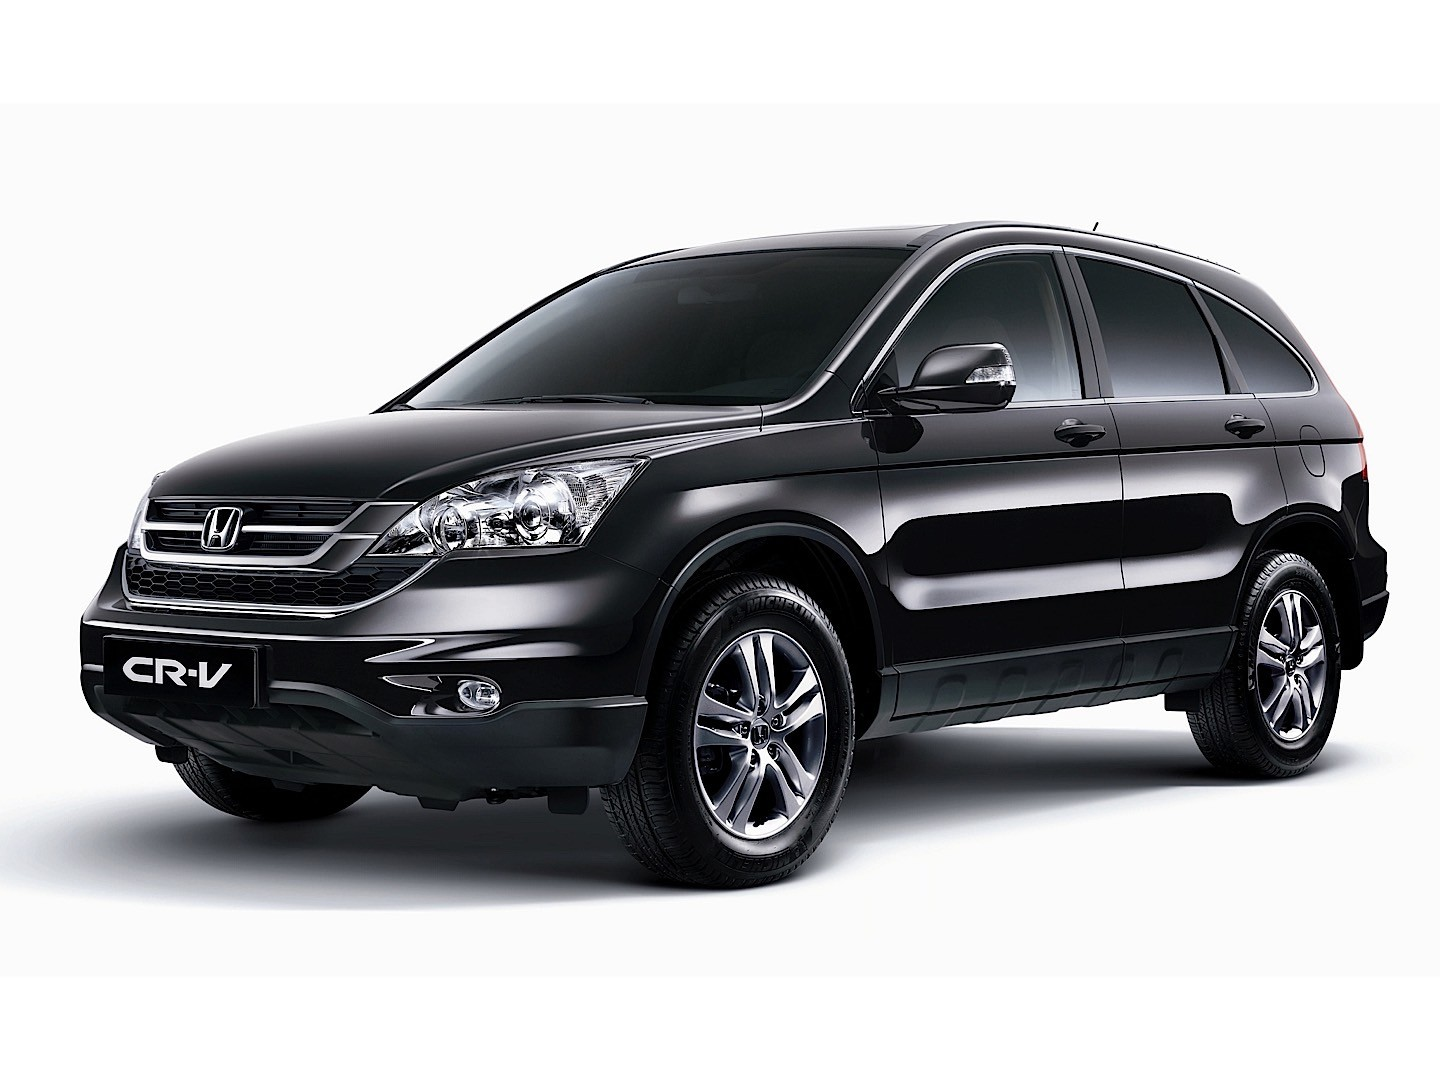 Honda CR-V 2.2 2010 photo - 5